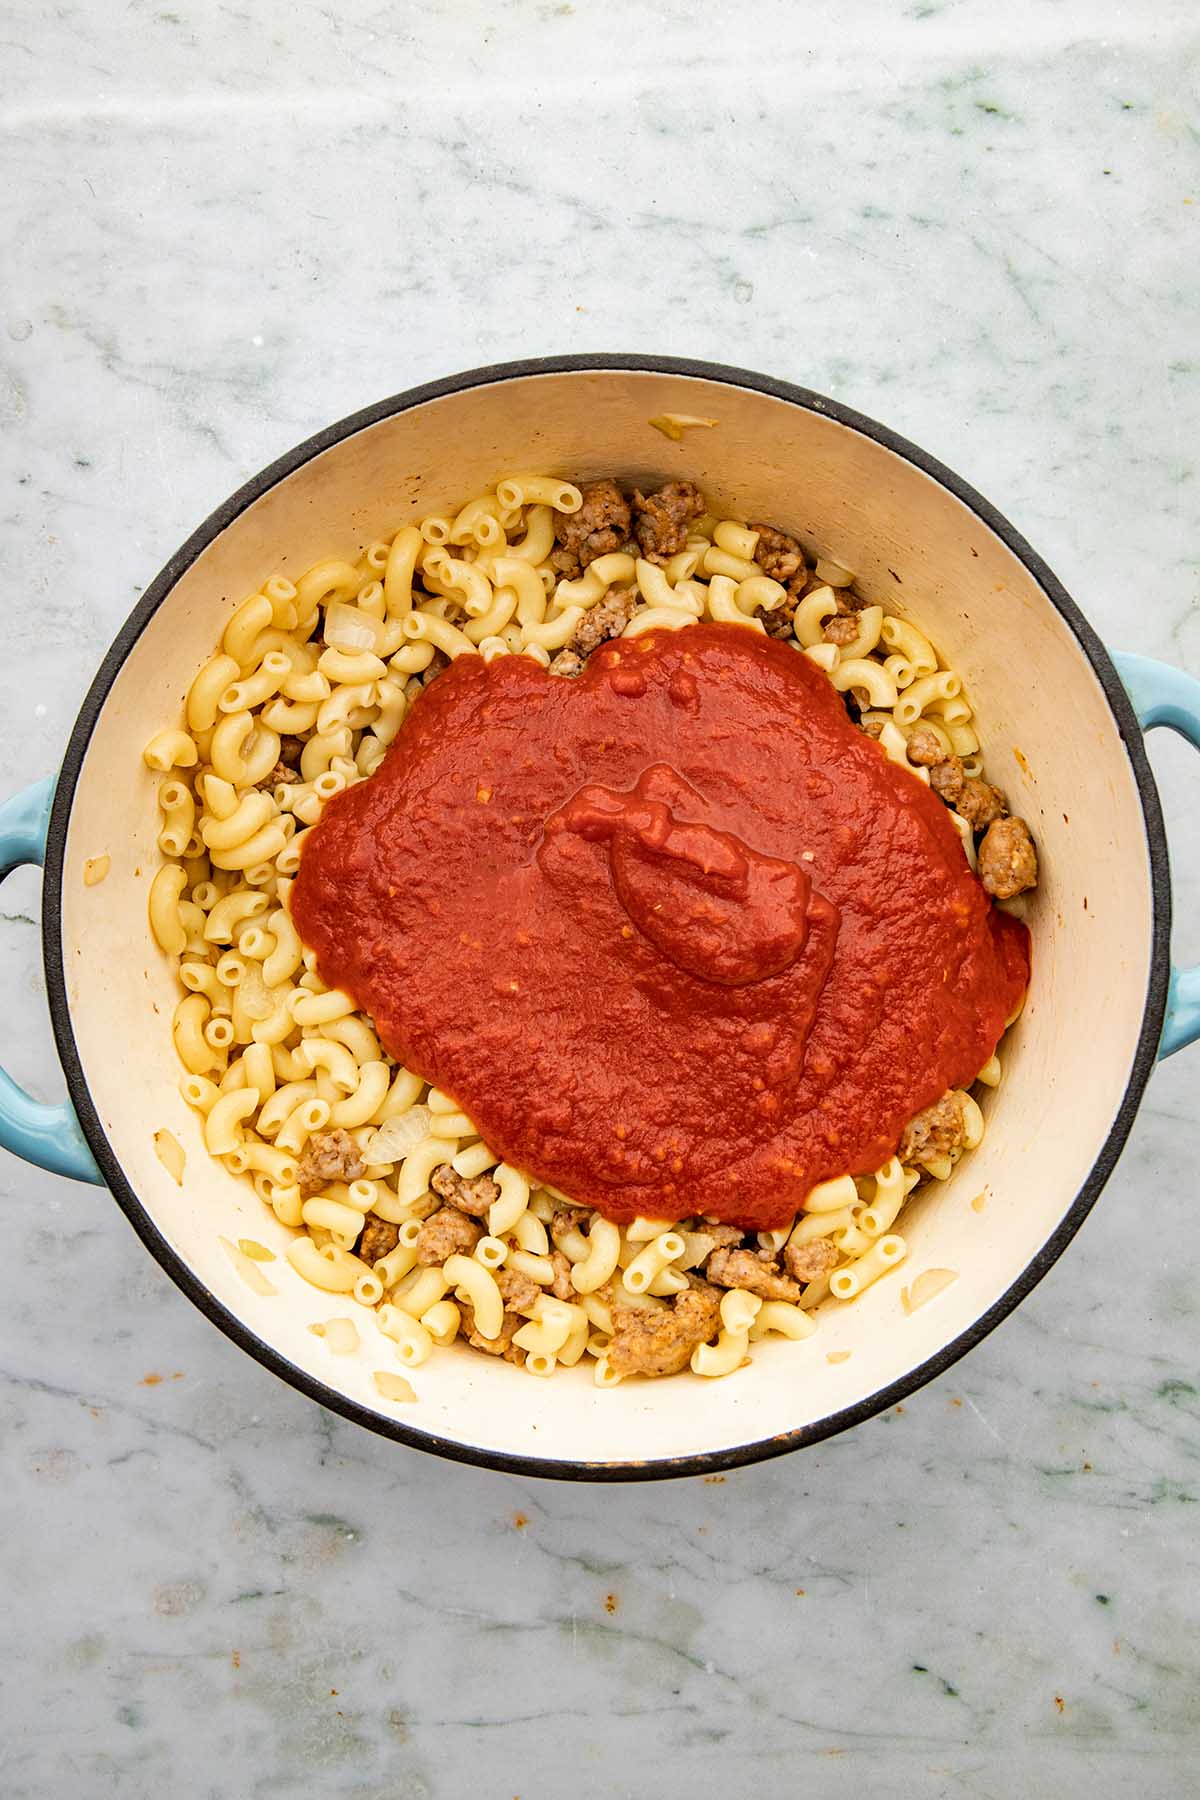 A pot of cooked macaroni noodles, sausage, onion, and tomato sauce, unmixed in a blue pot.